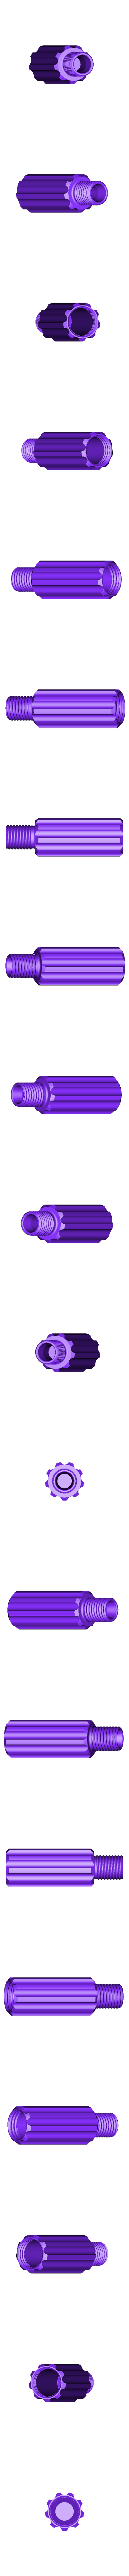 90mm_hollow_handle.stl Download free STL file Tap Holder Hollow Handle • 3D printing template, Wachet